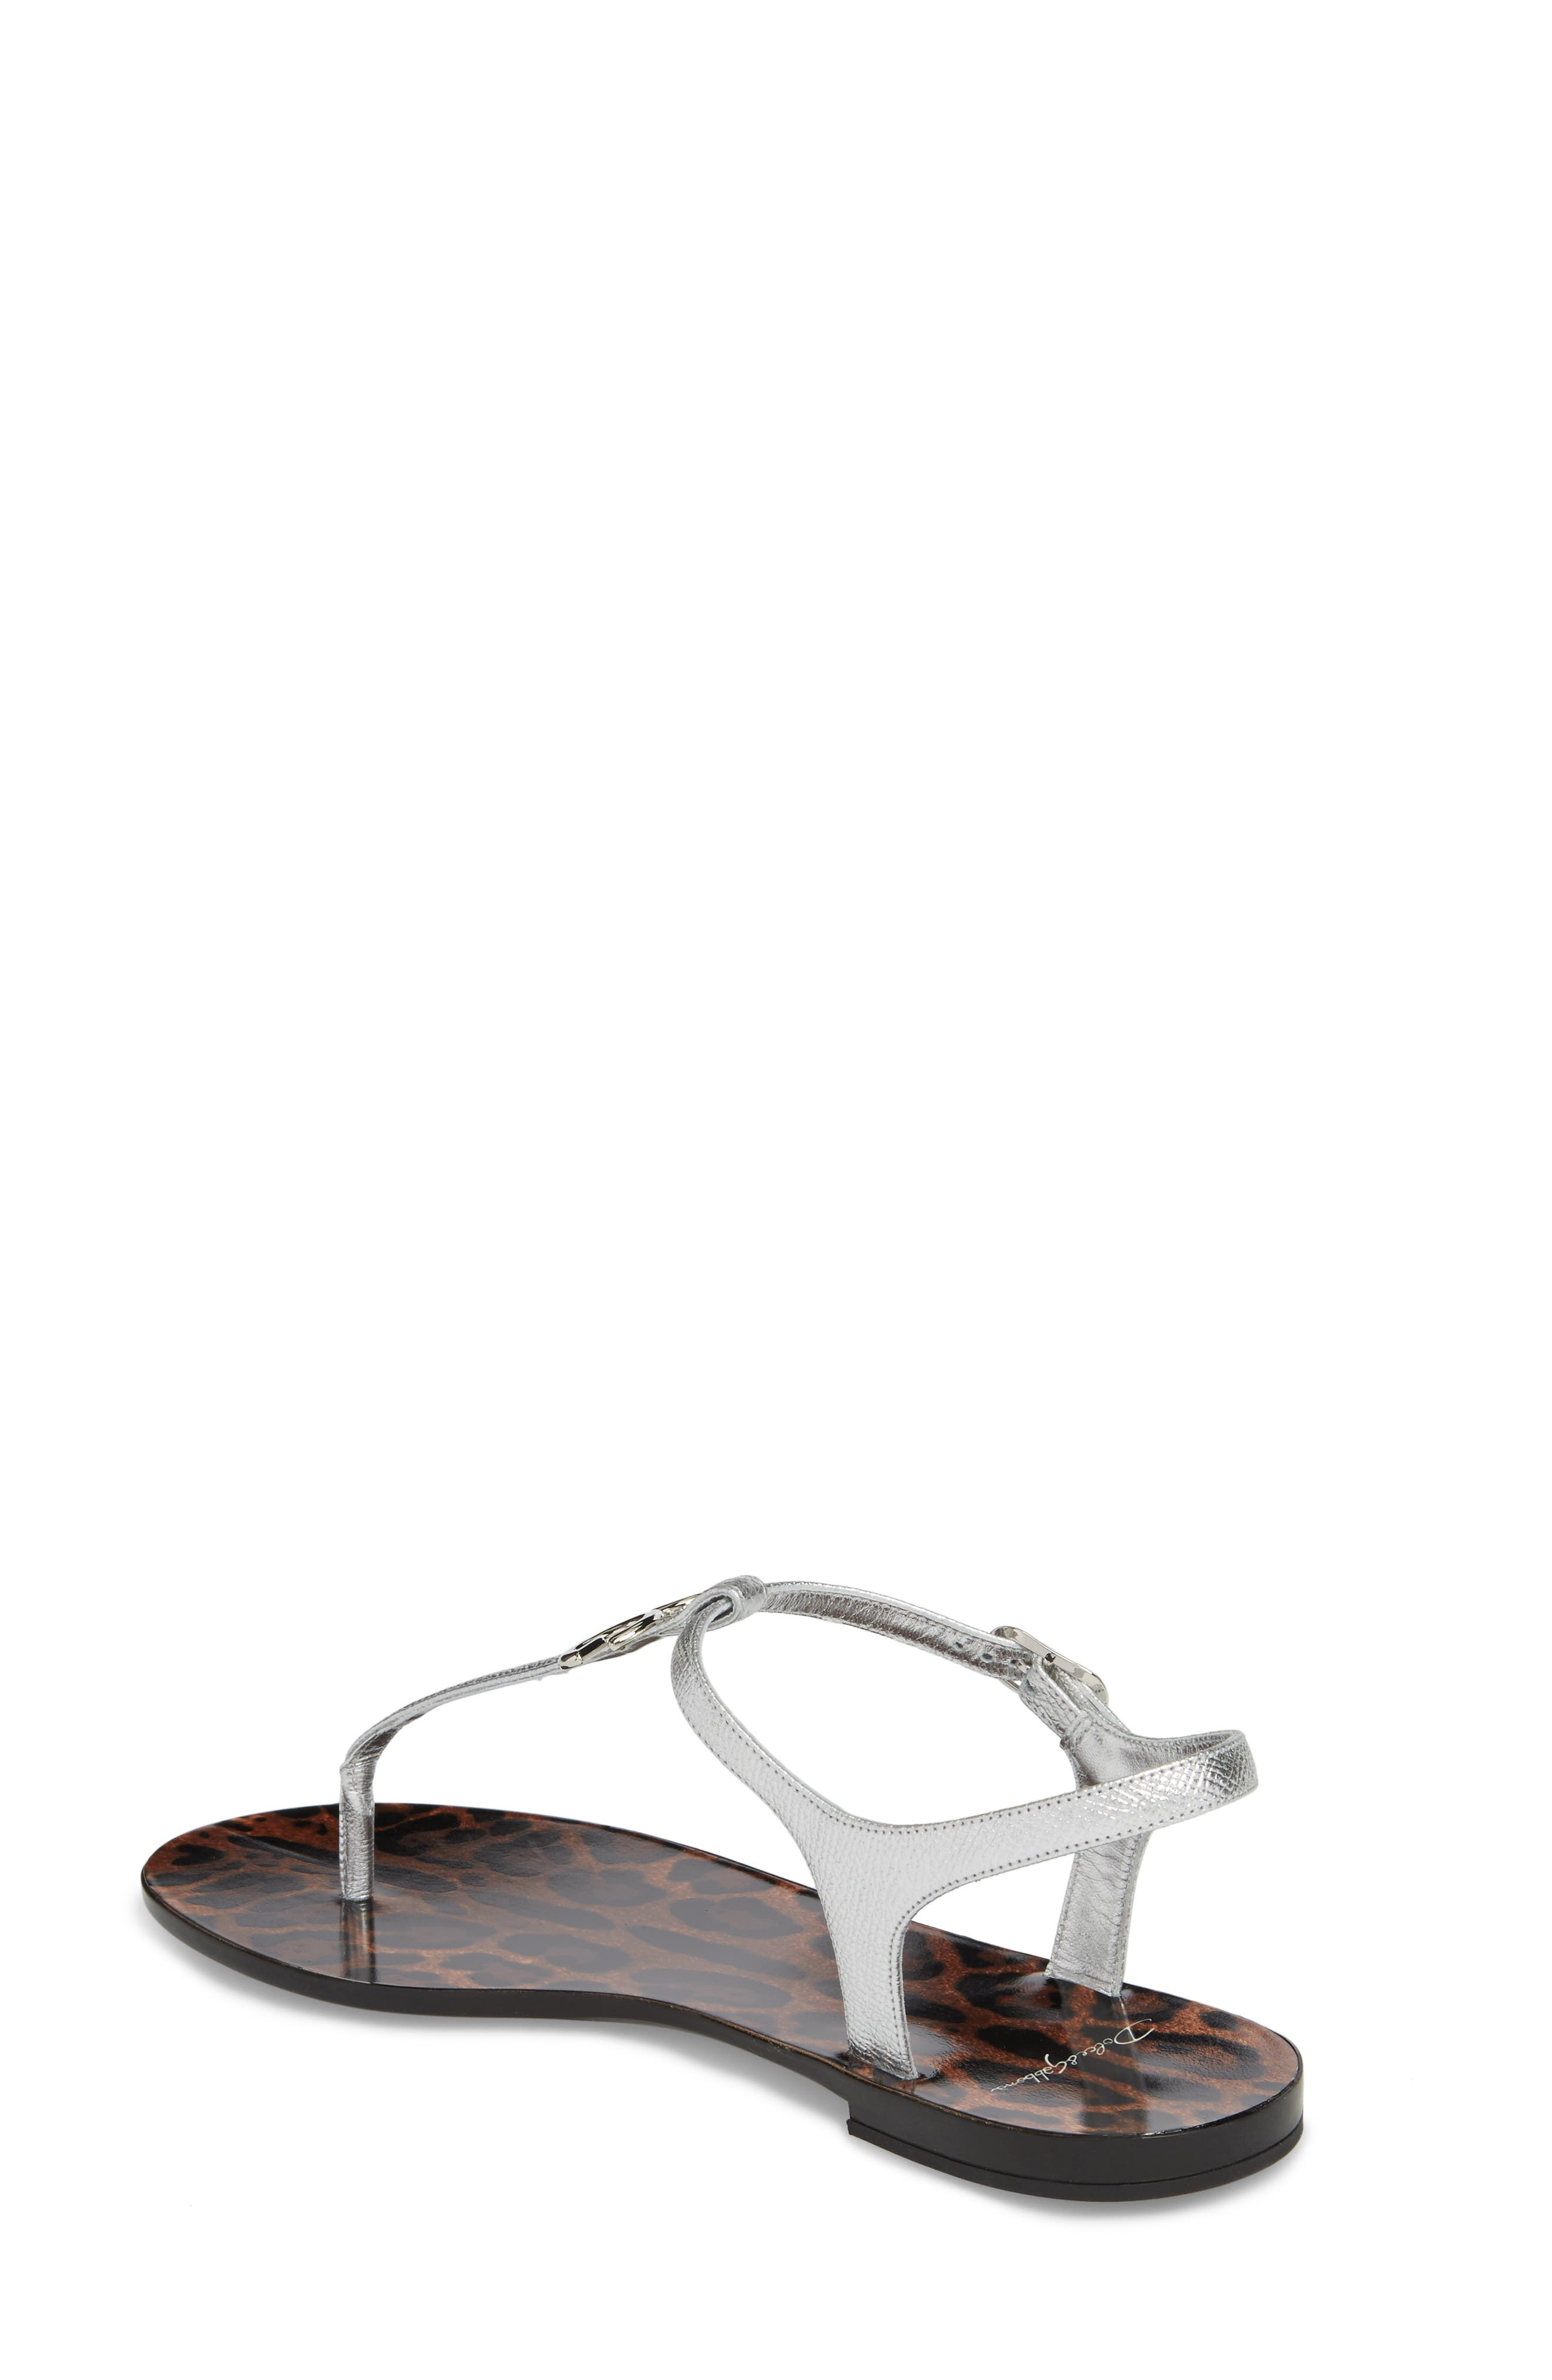 Dauphine Logo Sandal,                             Alternate thumbnail 2, color,                             040